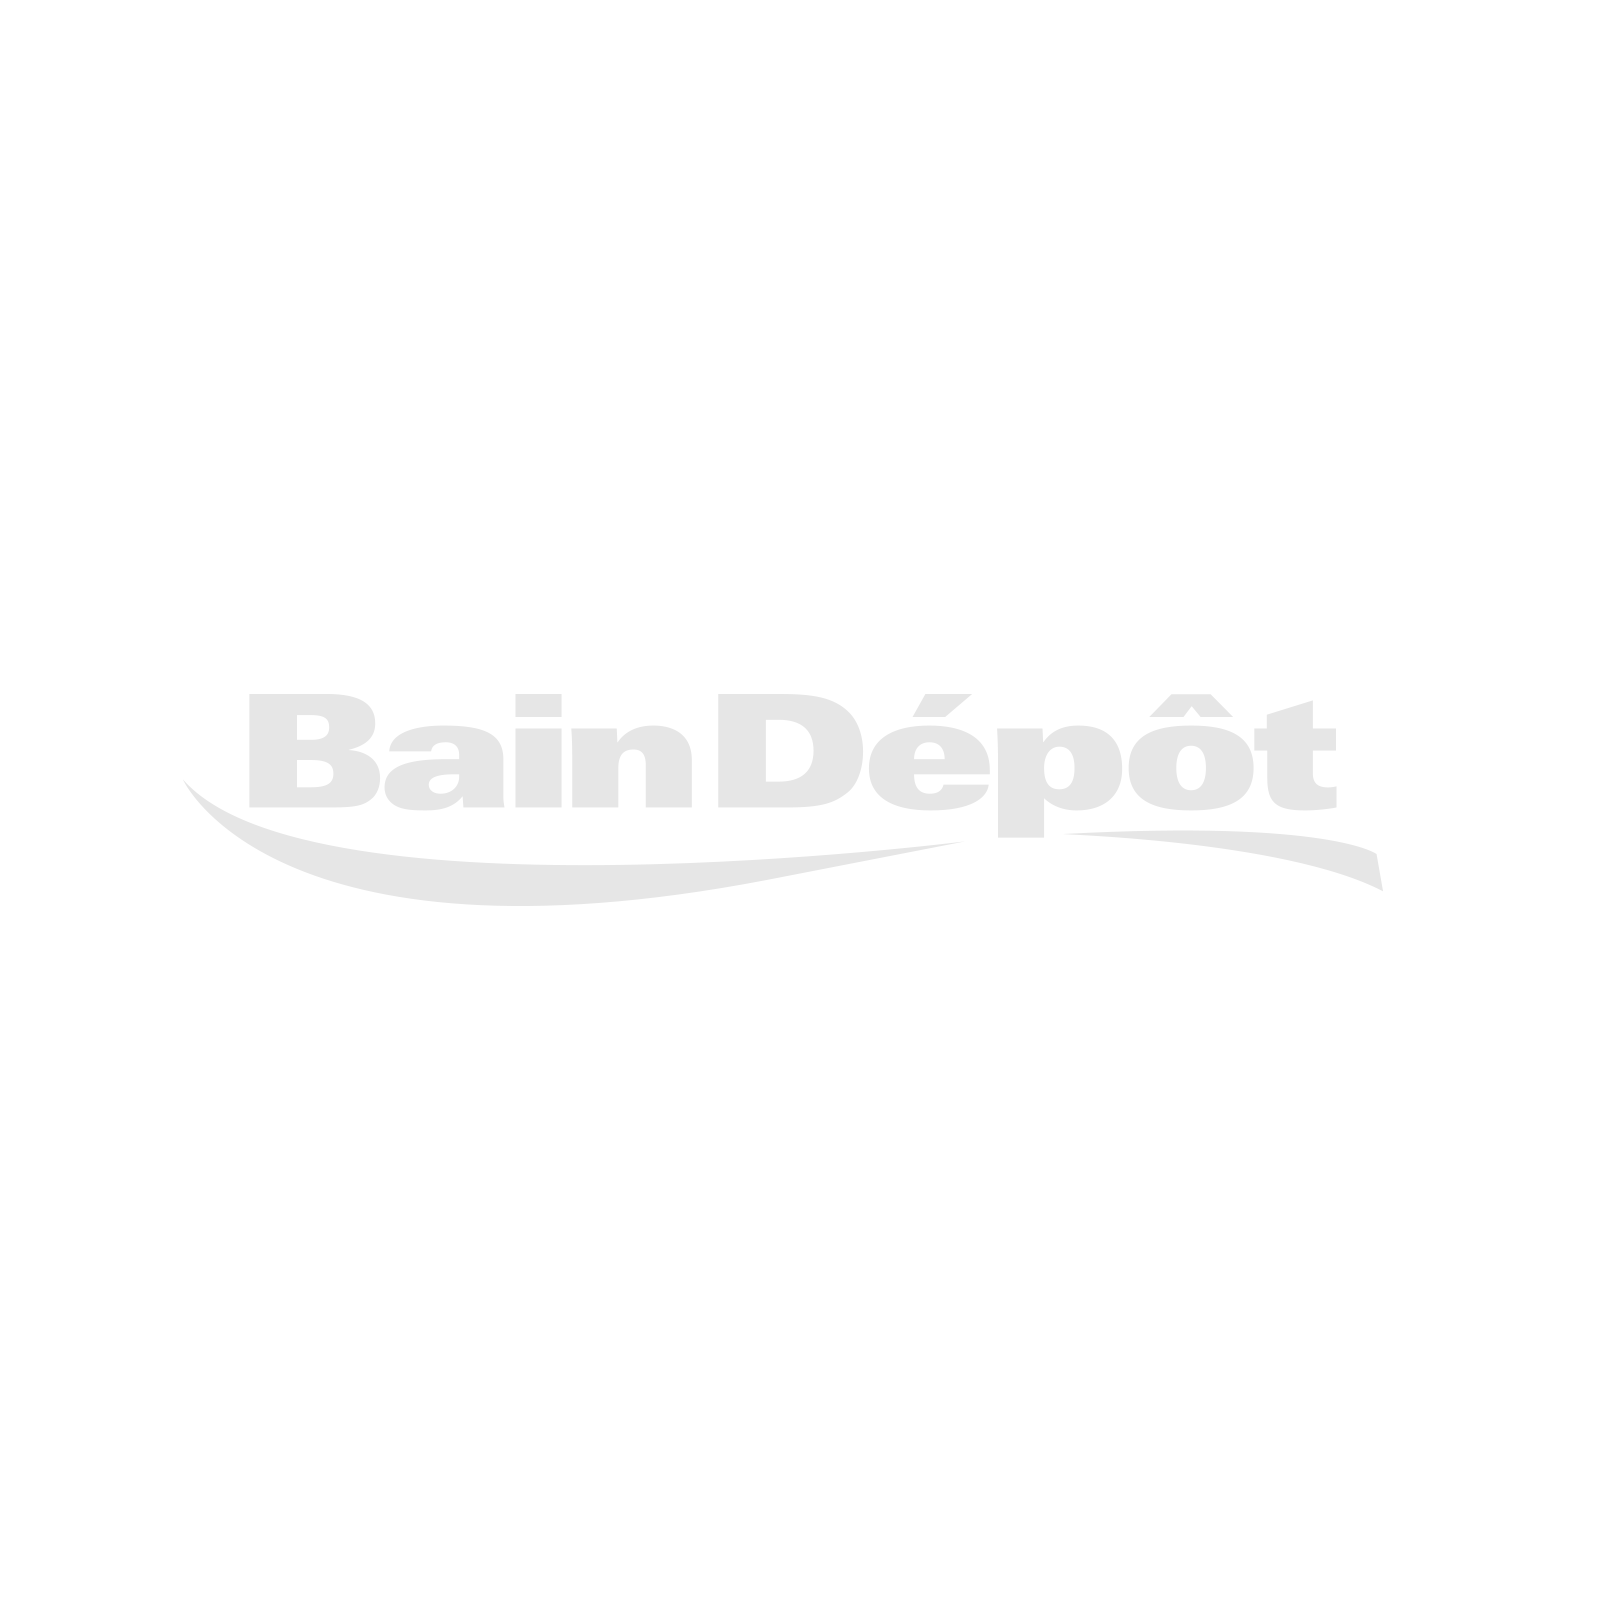 "42"" x 34"" Shower kit with pivot door, right side base and 12"" x 24"" white wall tiles"